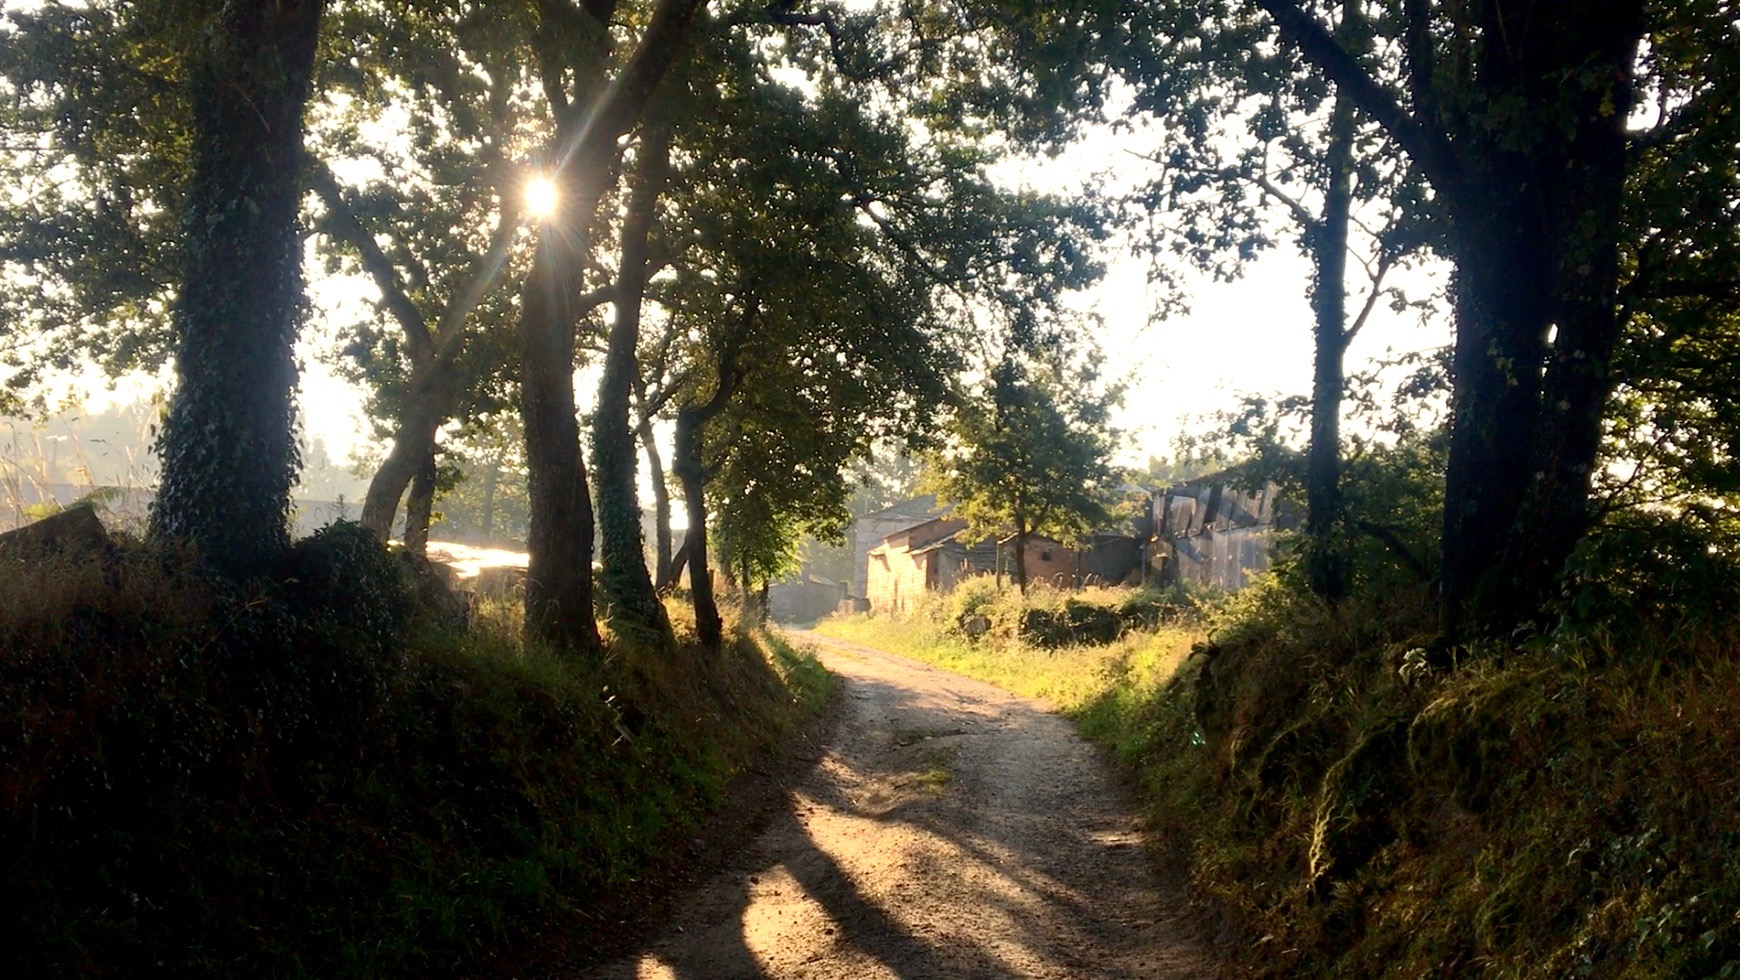 Sunlit path of the Camino, Day 7 on the Camino Primitivo